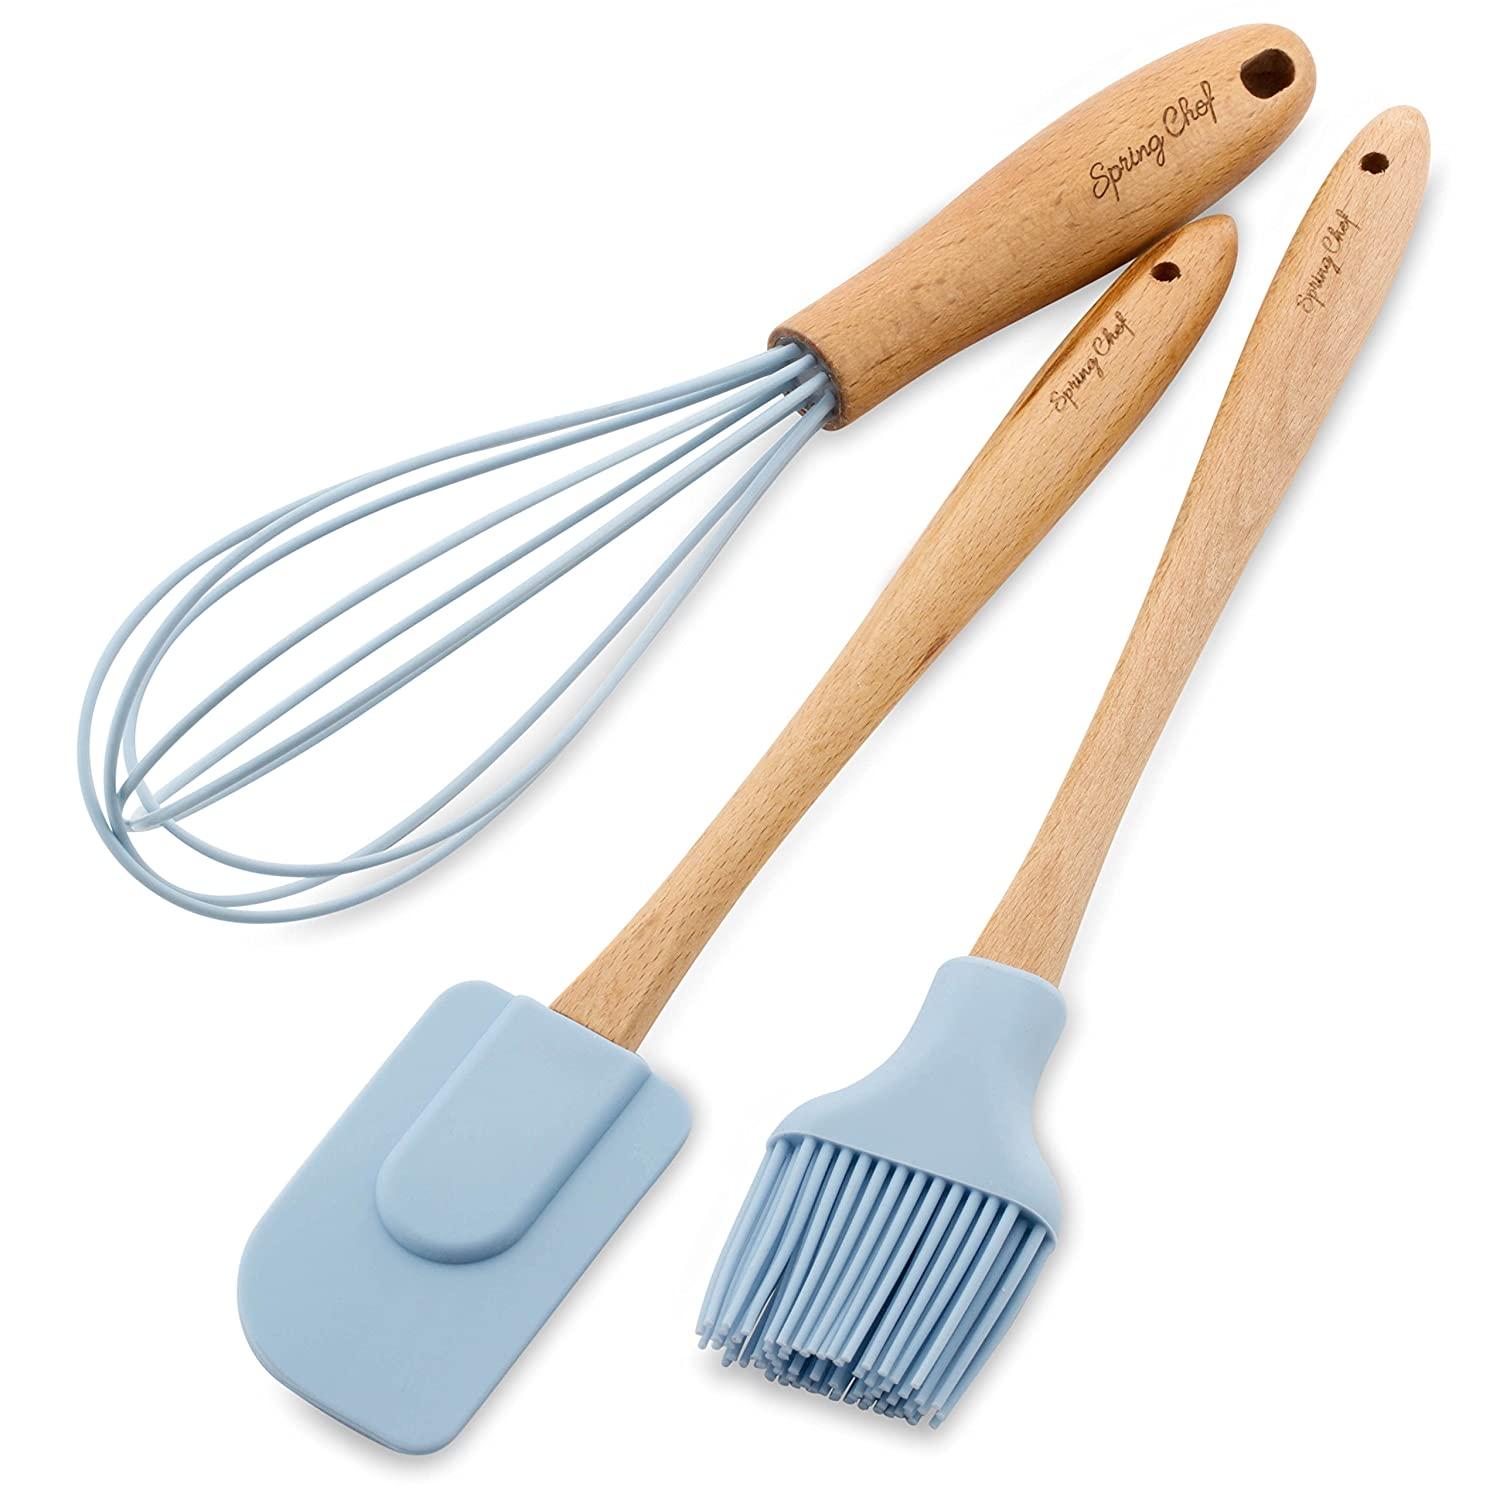 Spring Chef Spatula, Pastry Brush & Whisk, Silicone Set with Beechwood Handle, Blue COMINHKPR143190